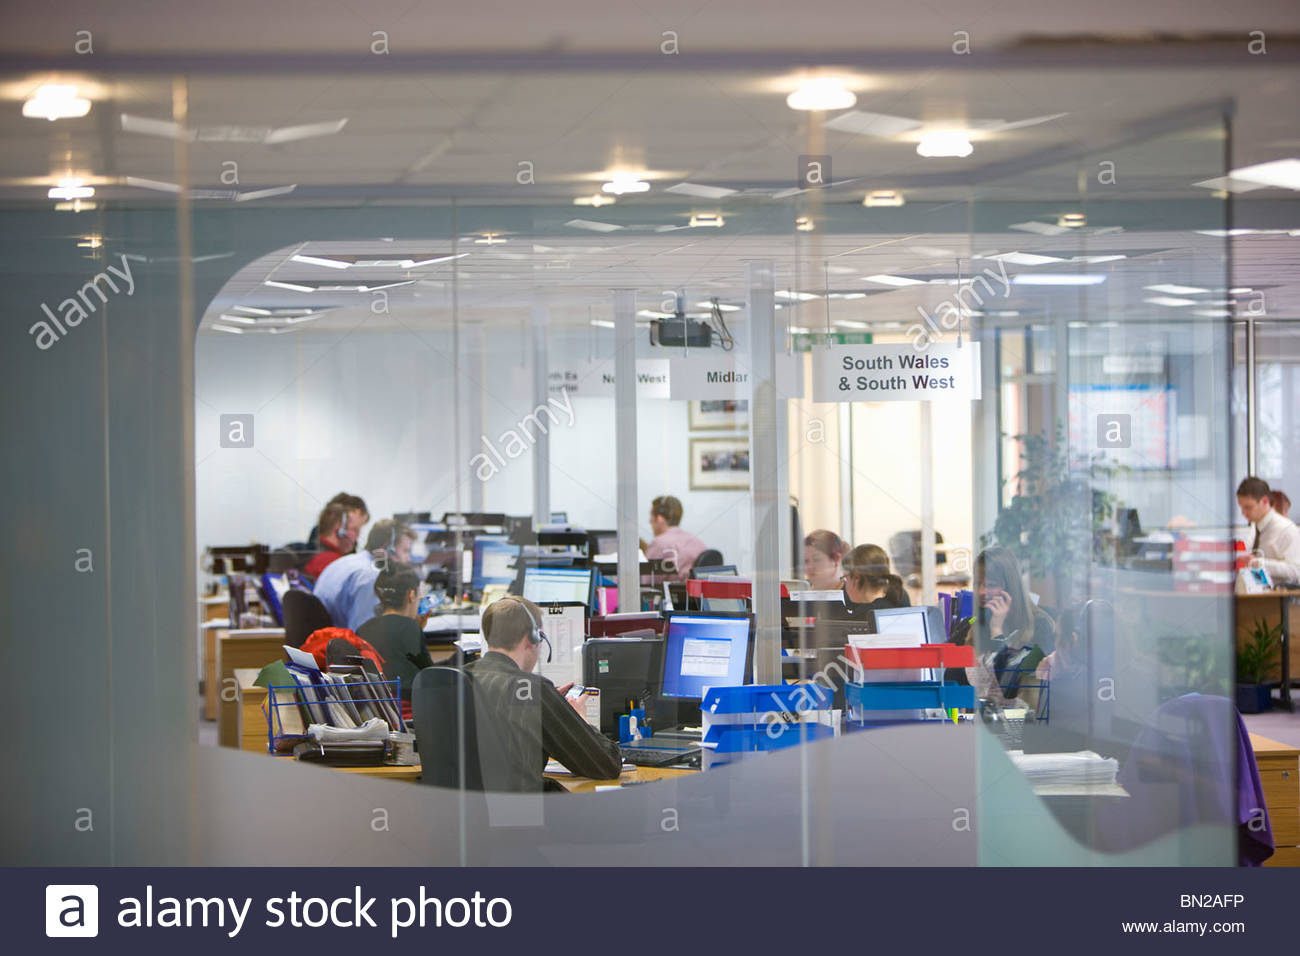 Sales people working in call center office - Stock Image